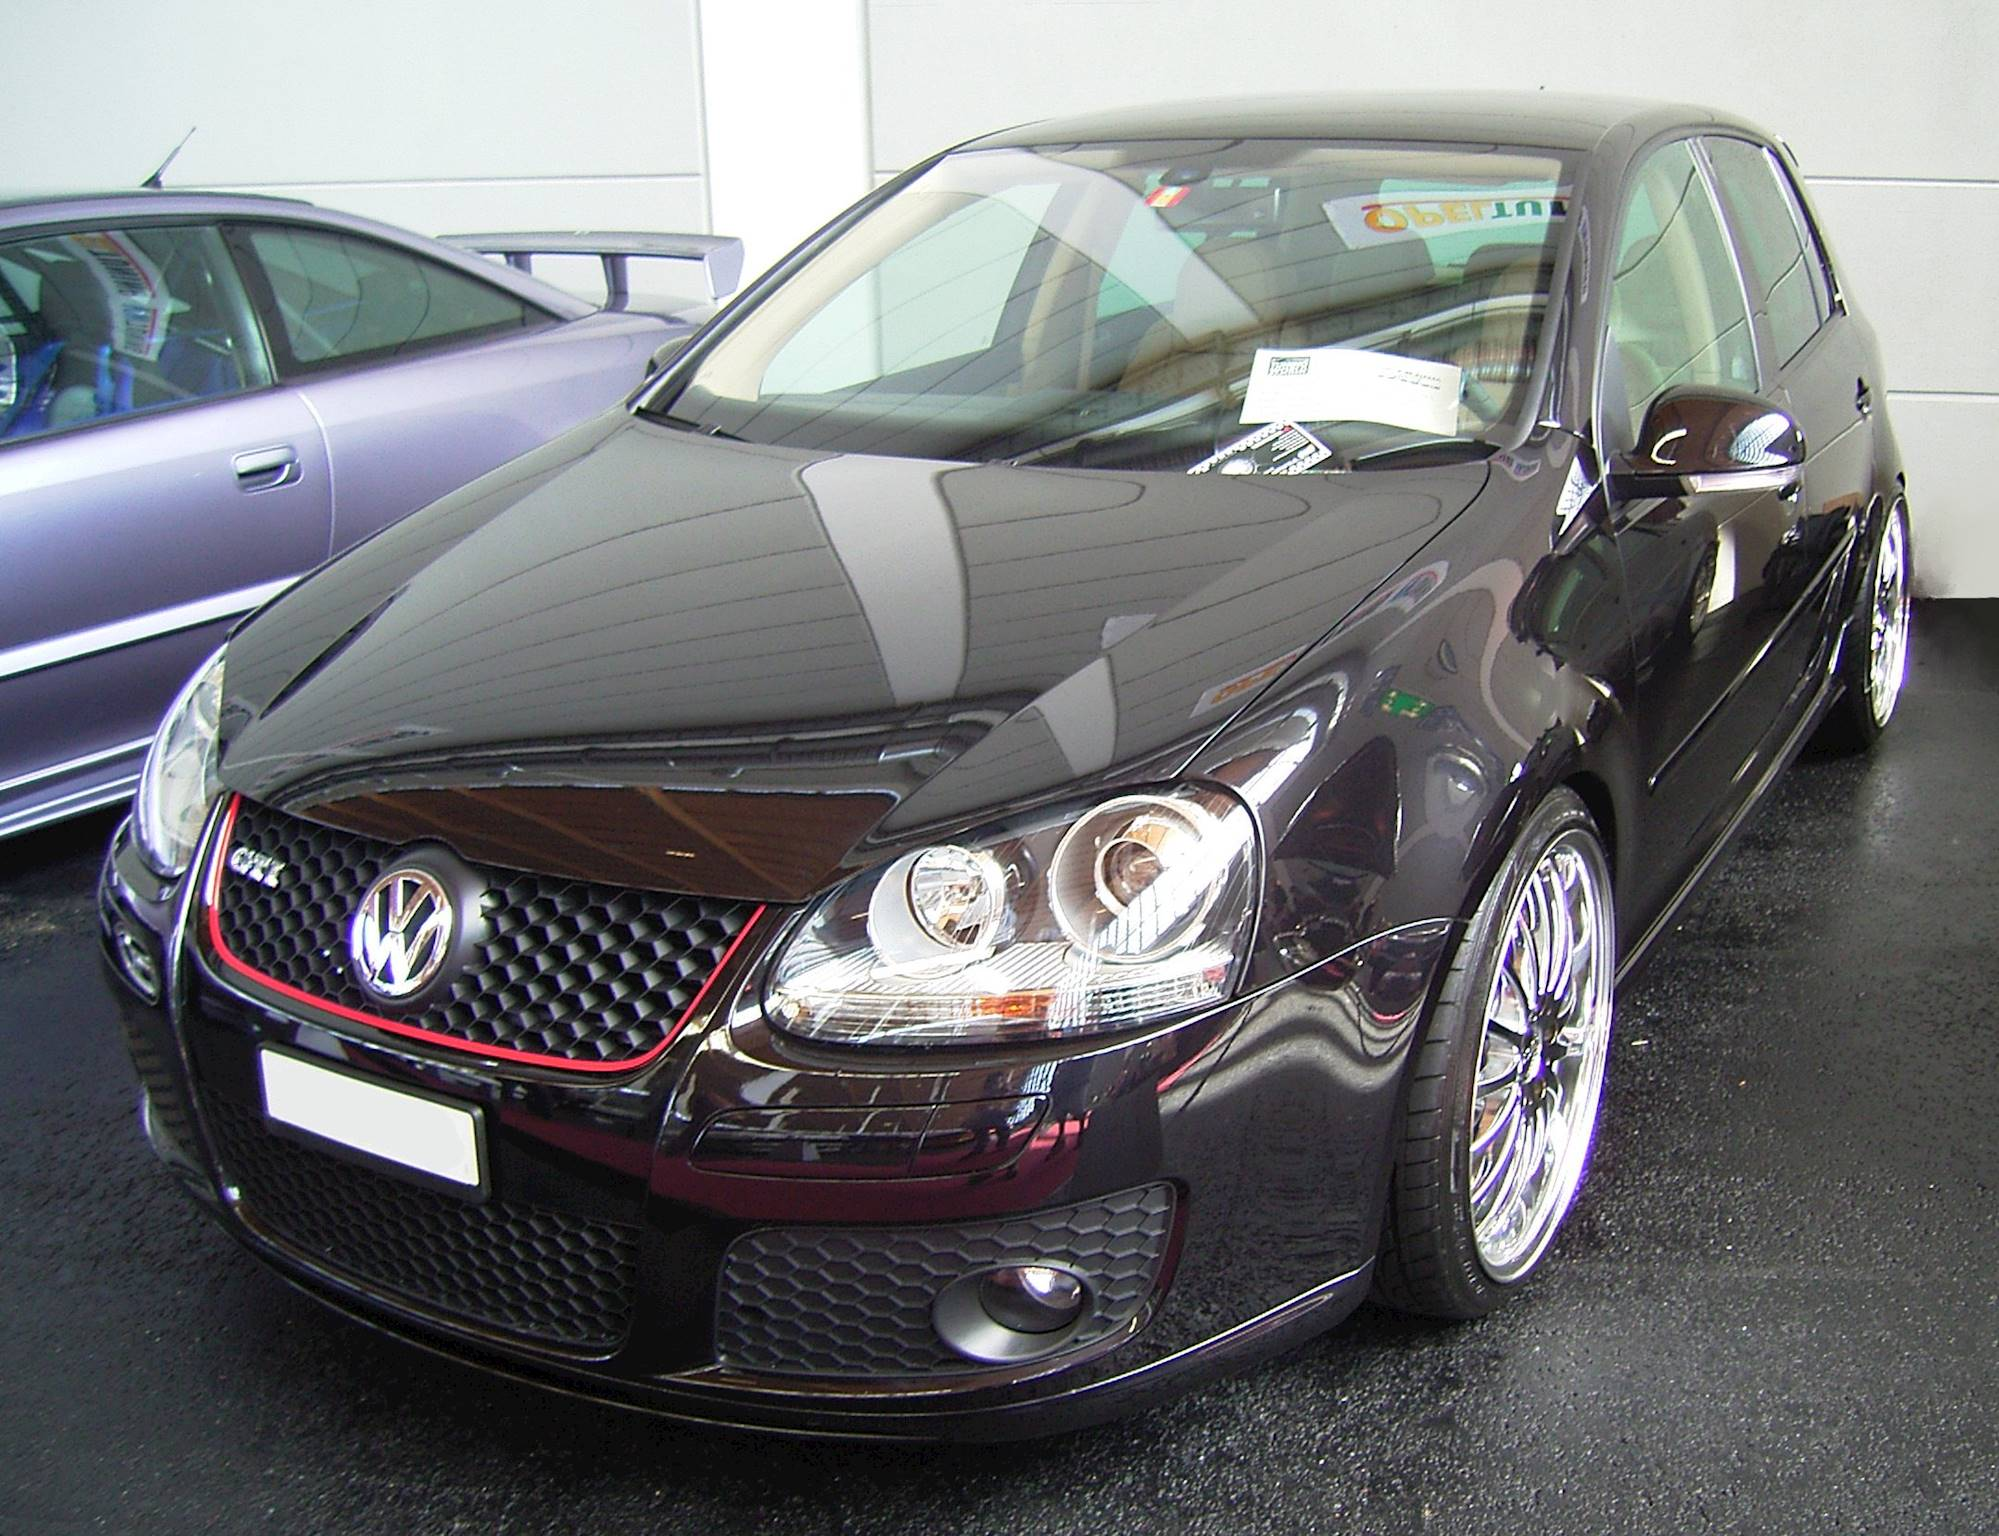 2006 volkswagen golf gti 1 8t 2dr hatchback 1 8l turbo. Black Bedroom Furniture Sets. Home Design Ideas